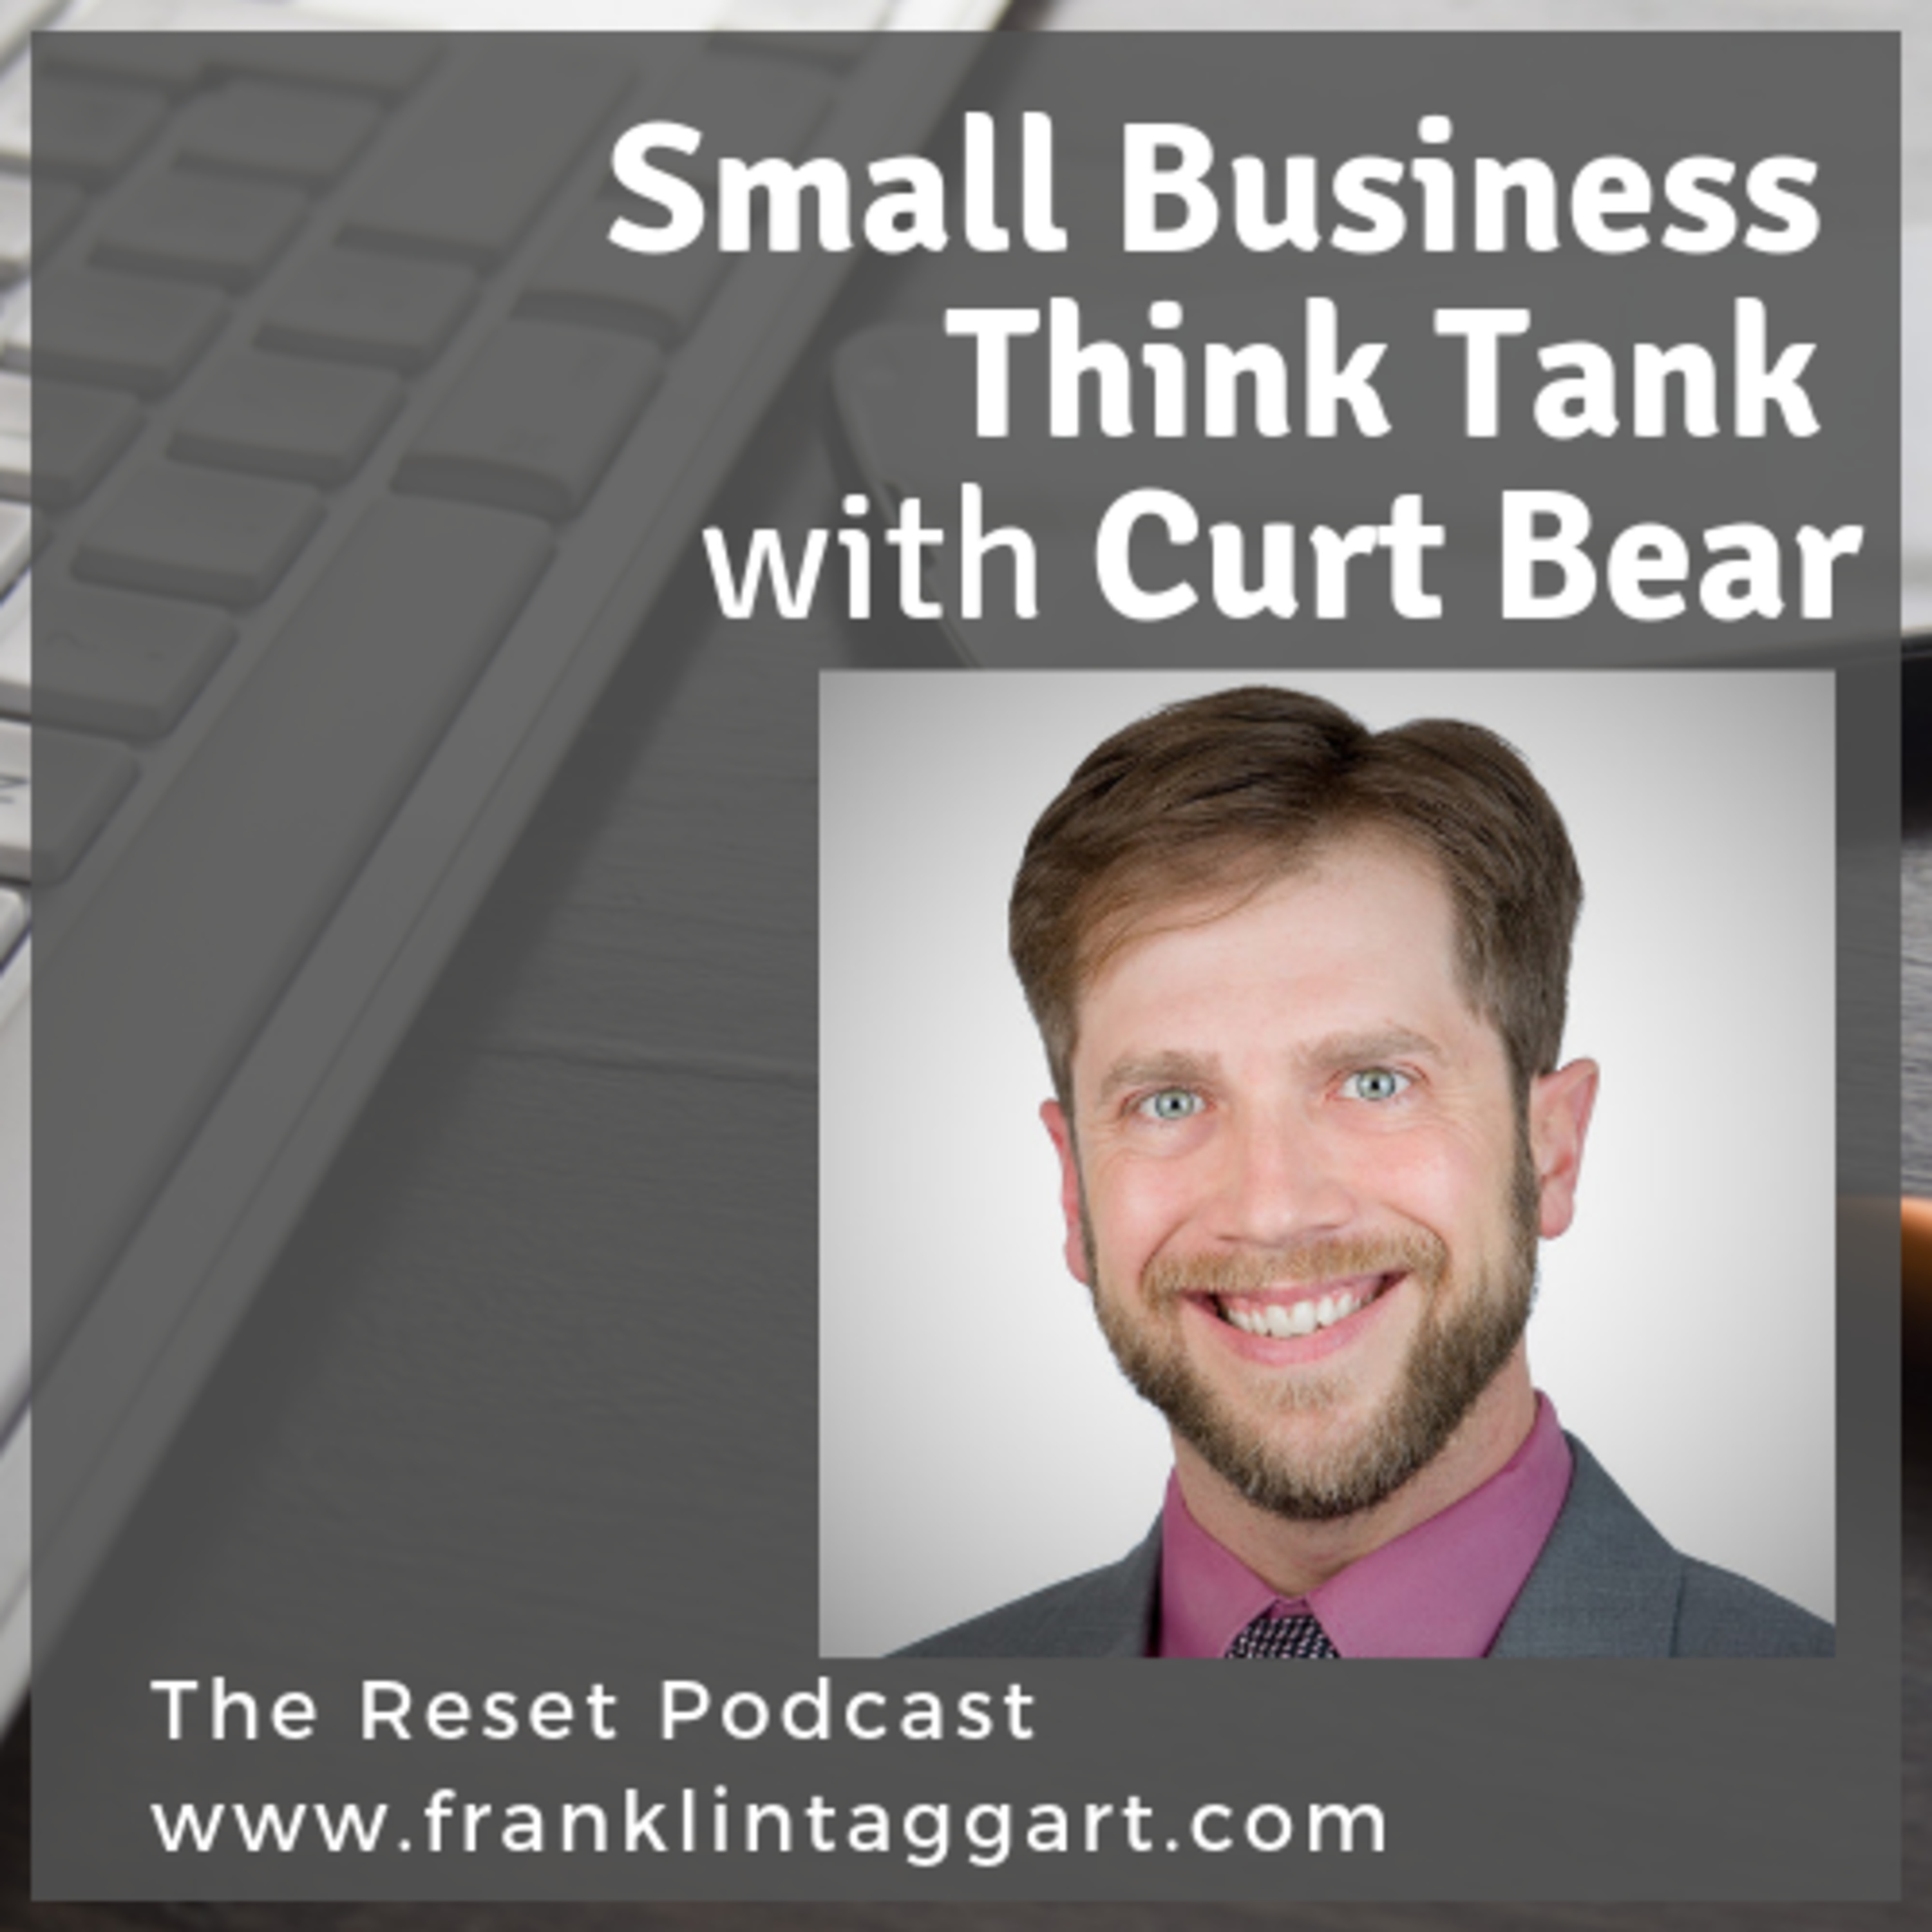 Small Business Think Tank with Curt Bear